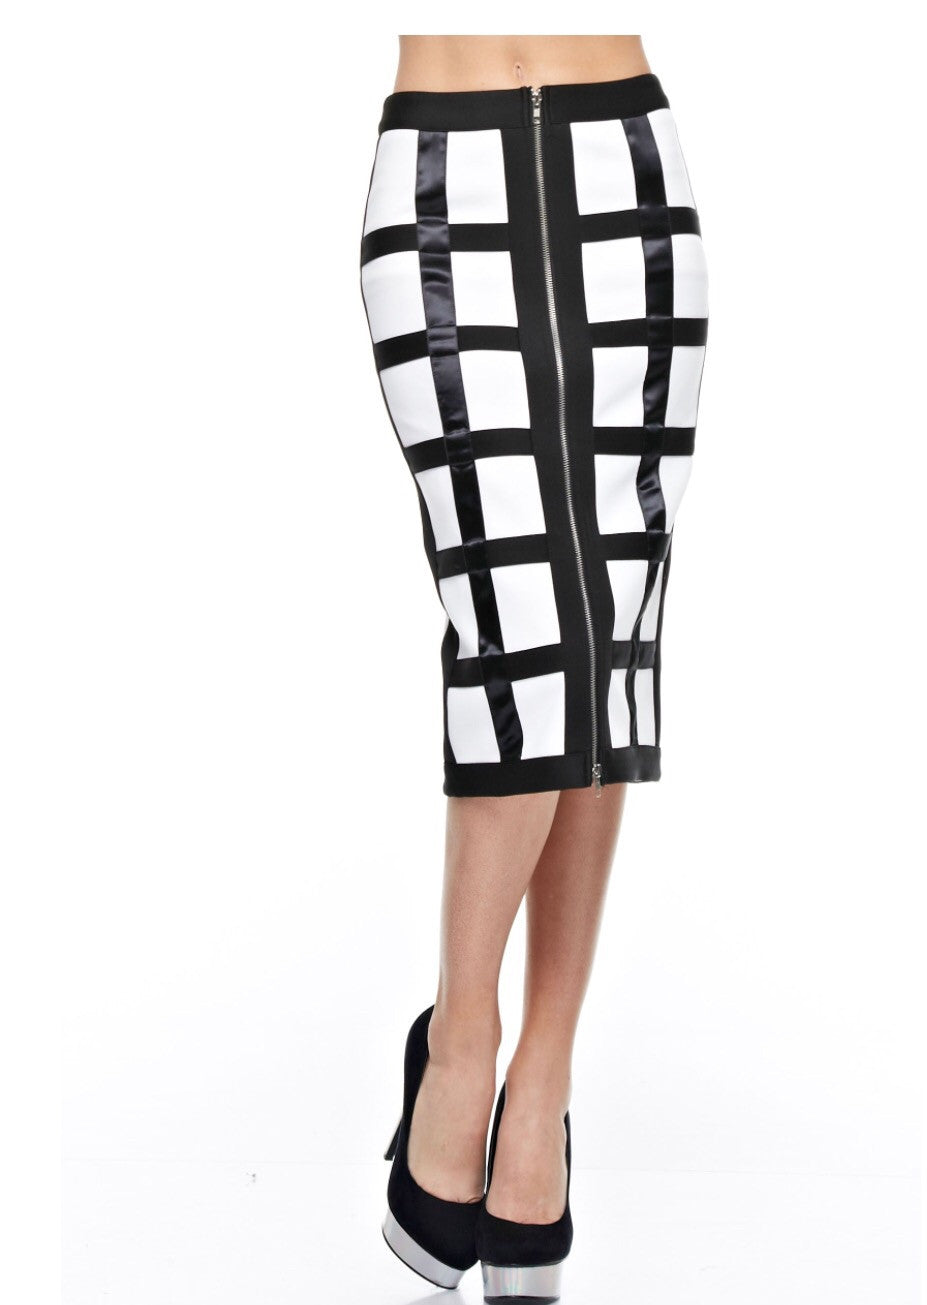 Pretty In Style Satin Strips Pencil Skirt - NaughtyGrl